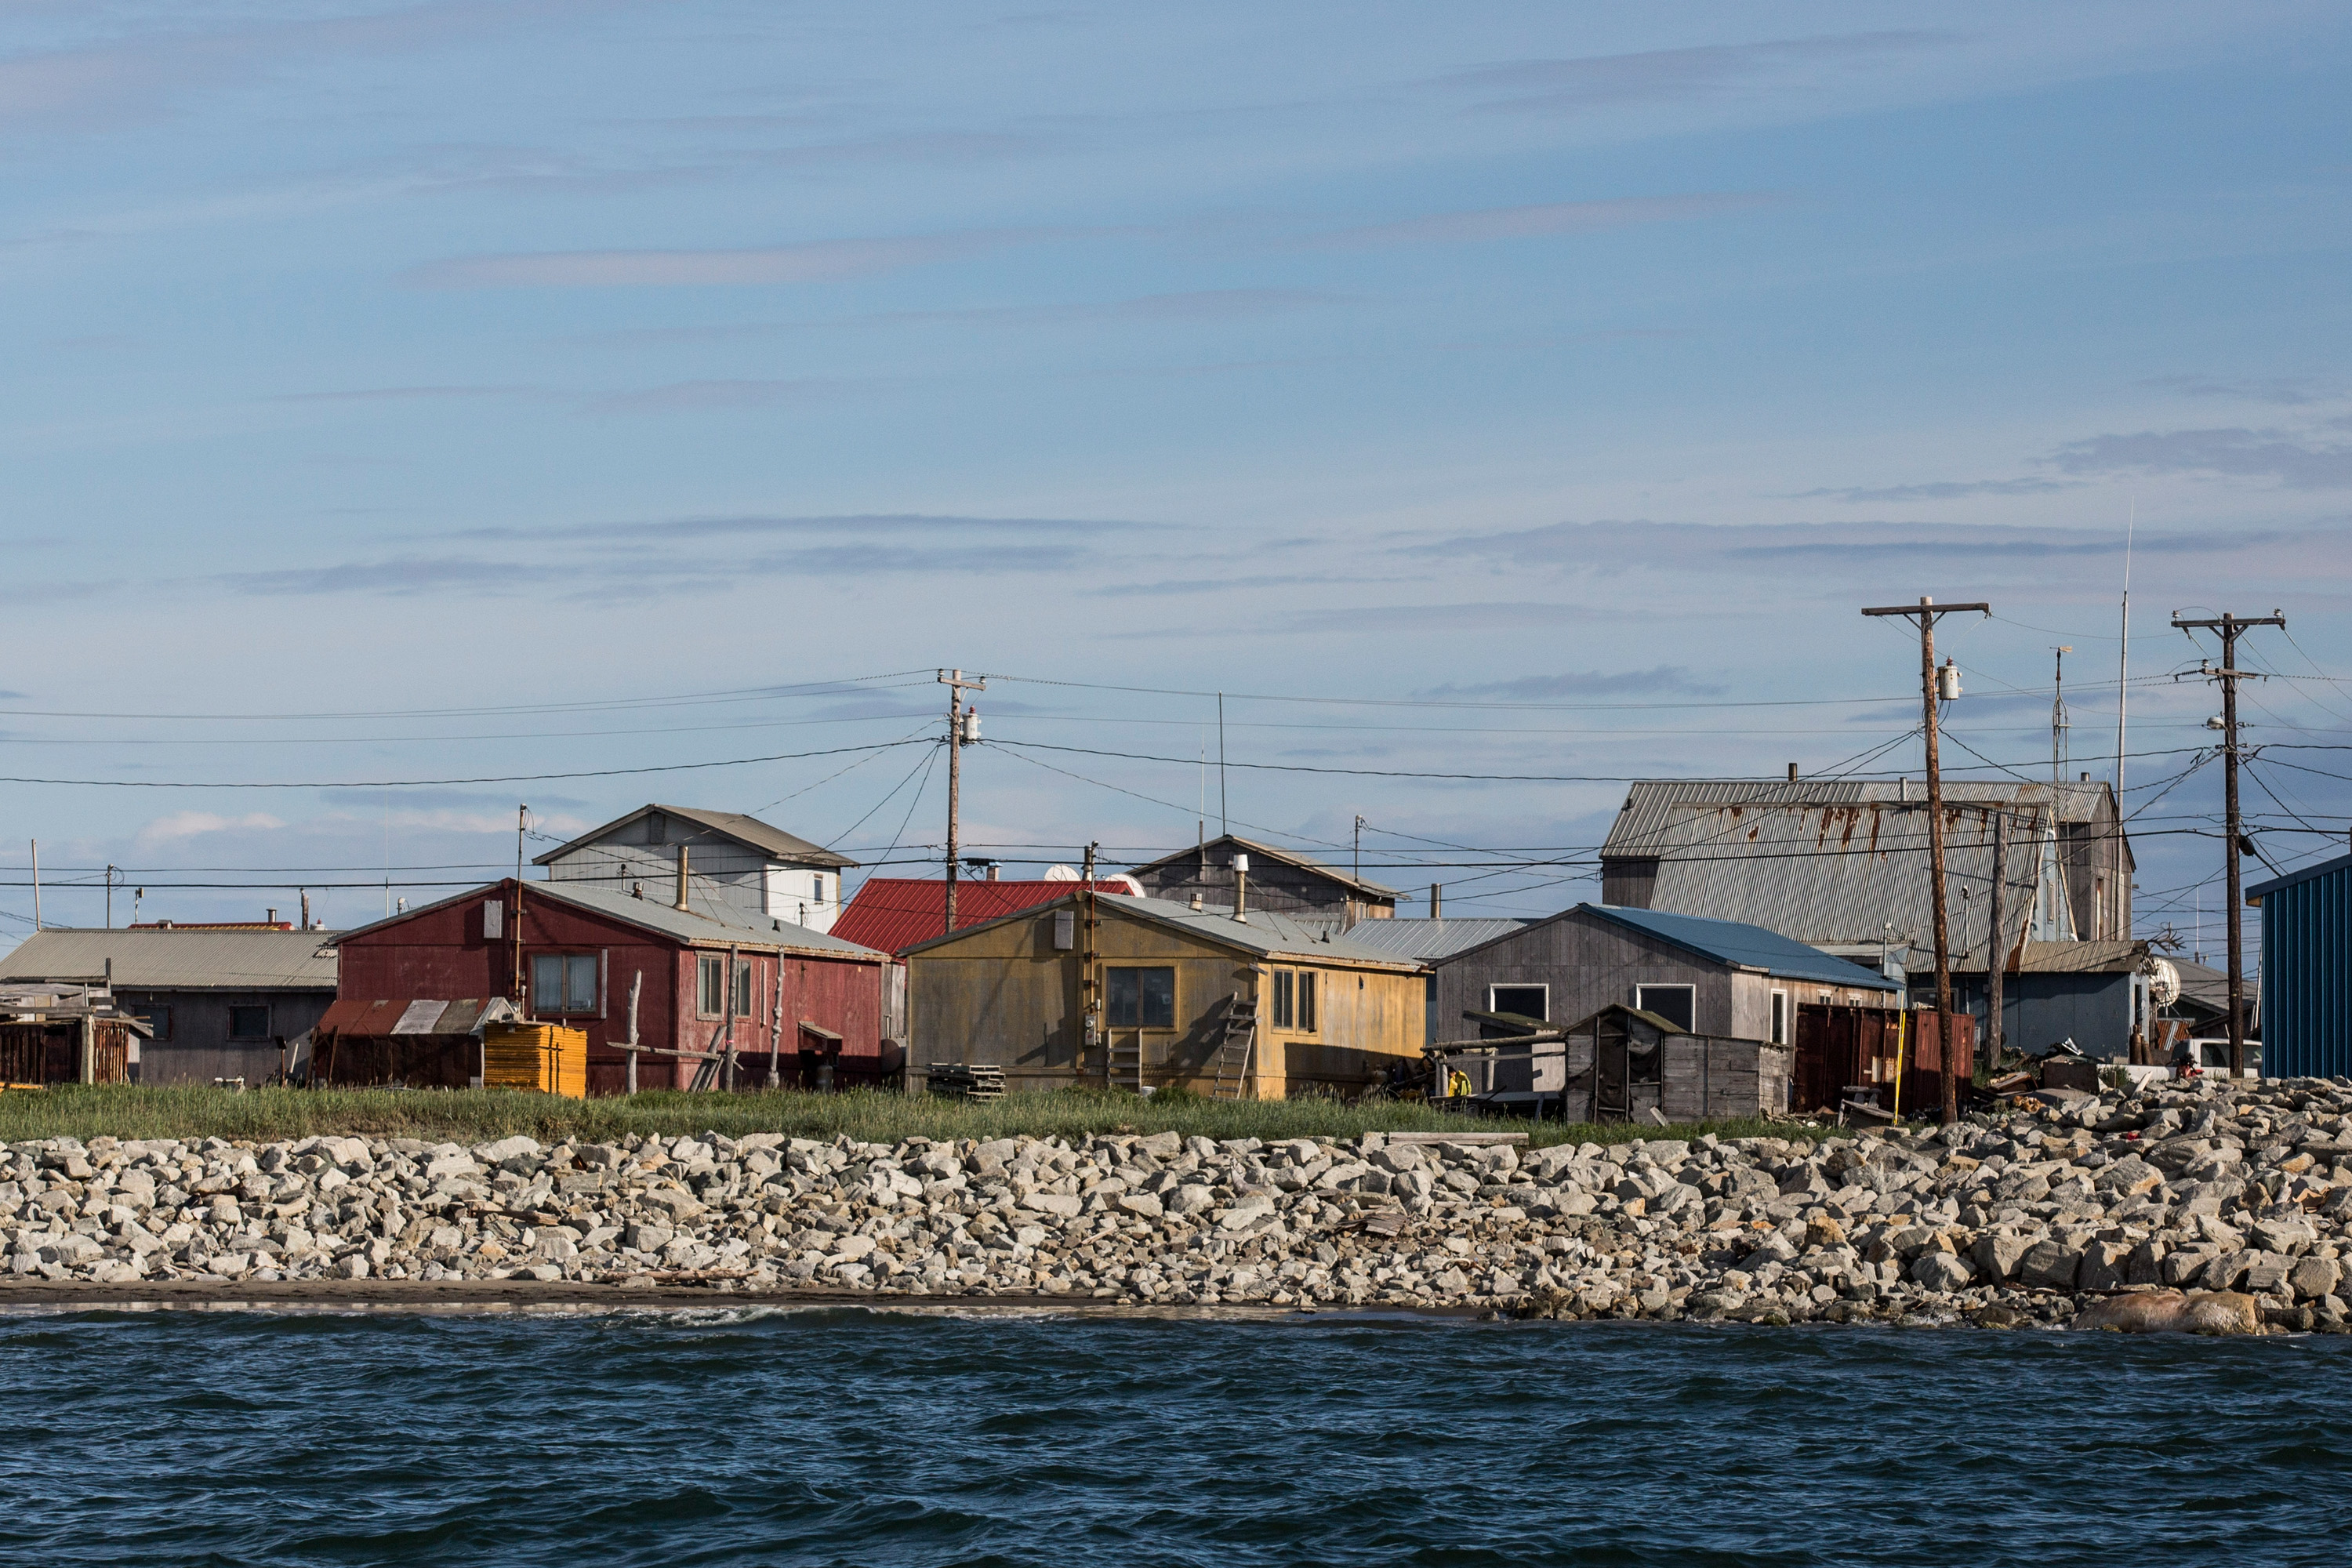 The village of Shishmaref, Alaska, which sits upon the Chukchi sea, is seen on July 9, 2015.